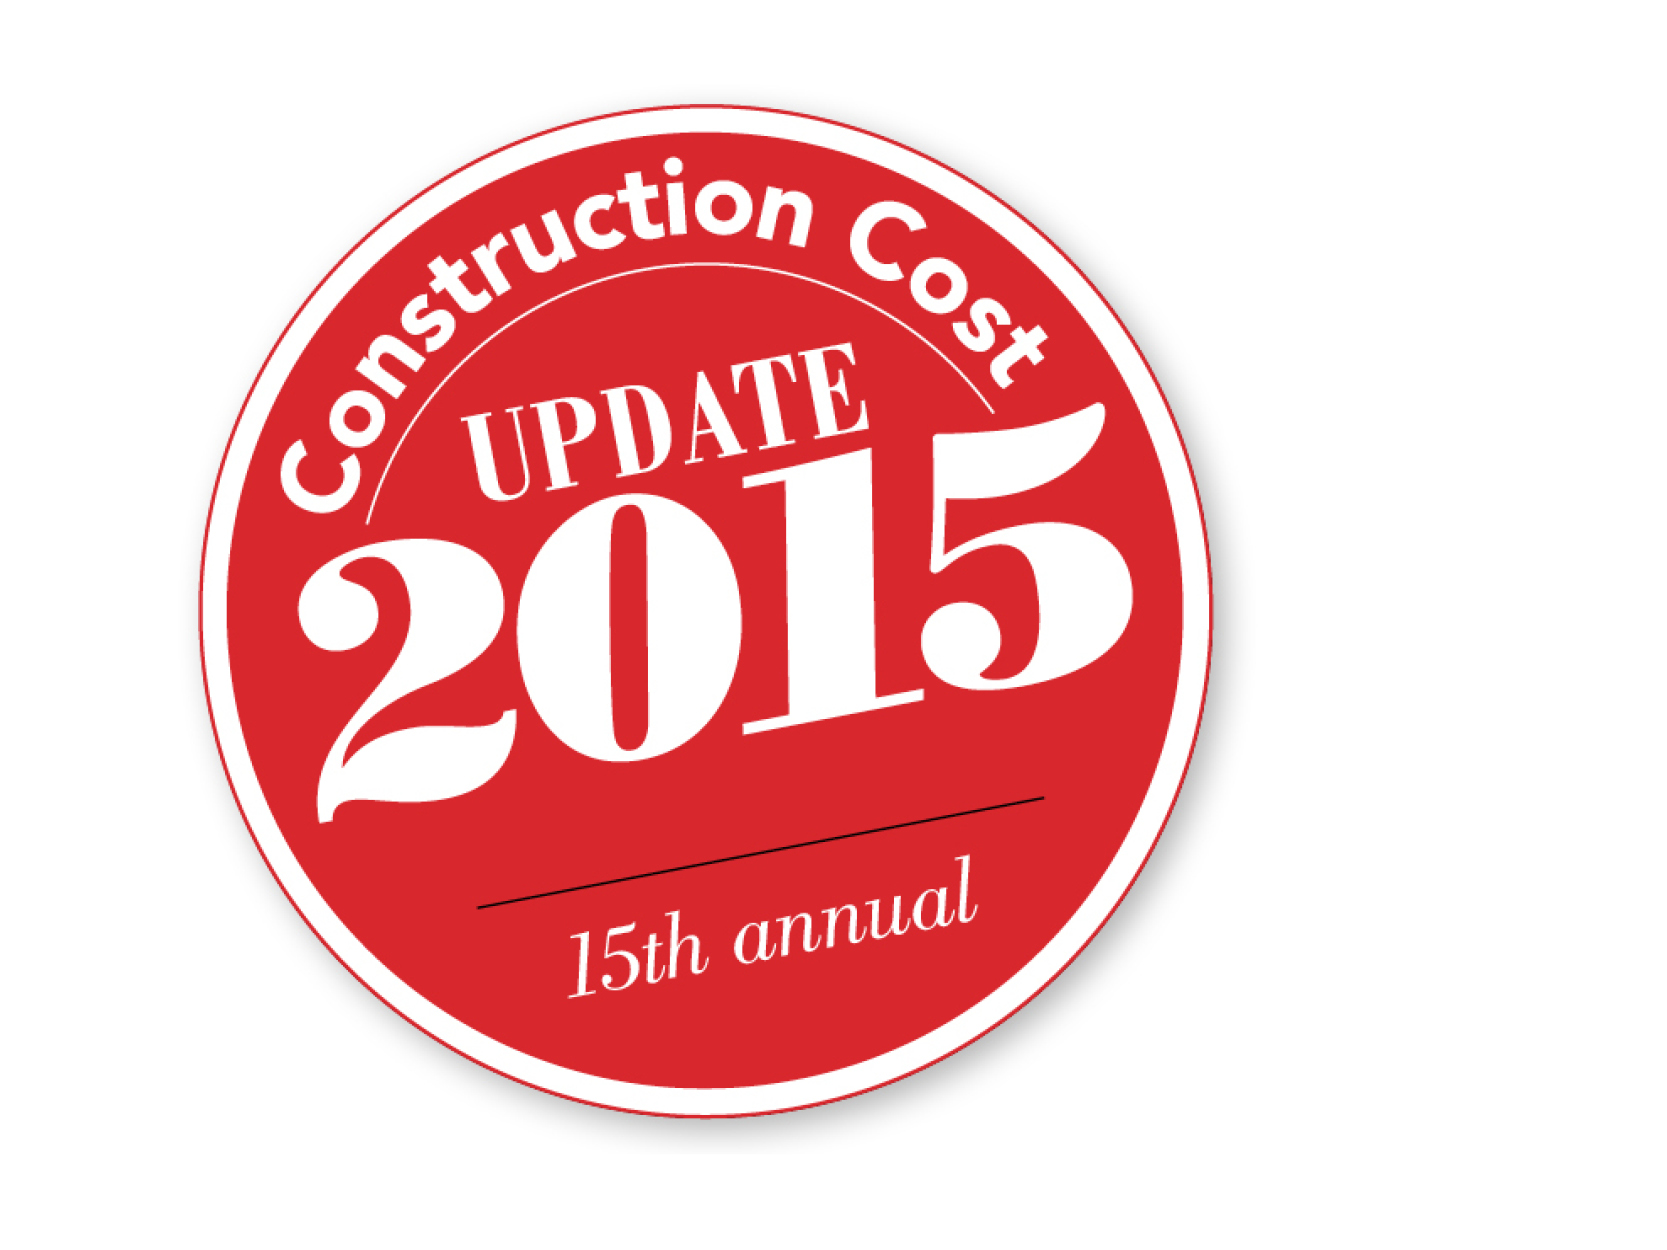 Preview of the resource library item for Kirksey's 15th Annual Construction Cost Update